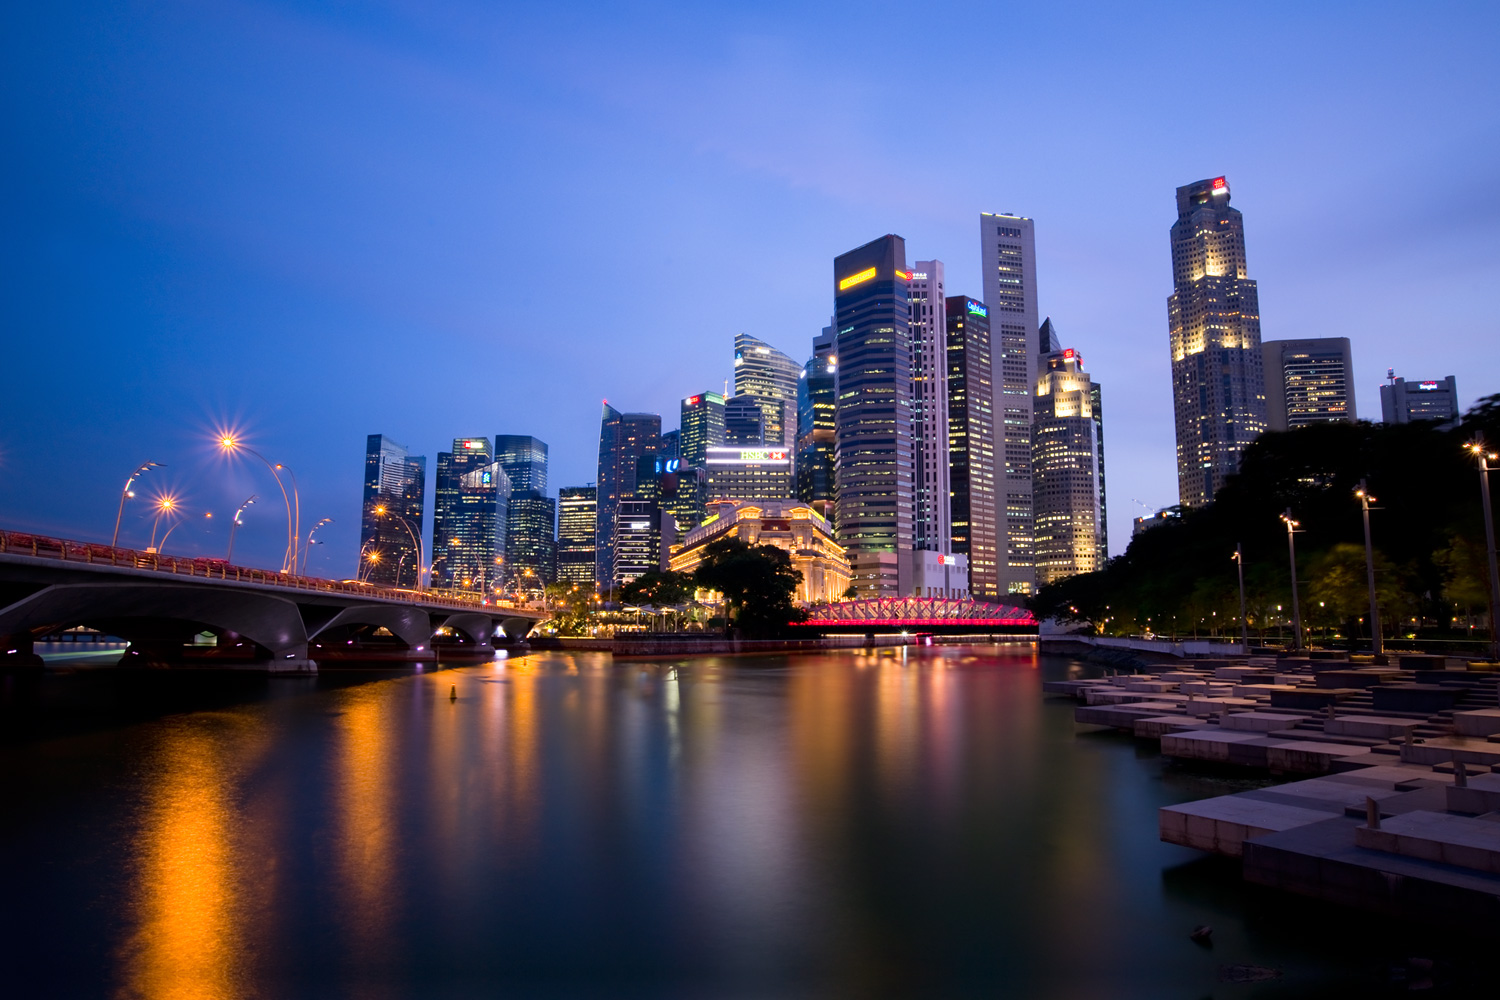 Singapore in focus - Out of Focus Cityscape Bokeh Images at Blue Hour